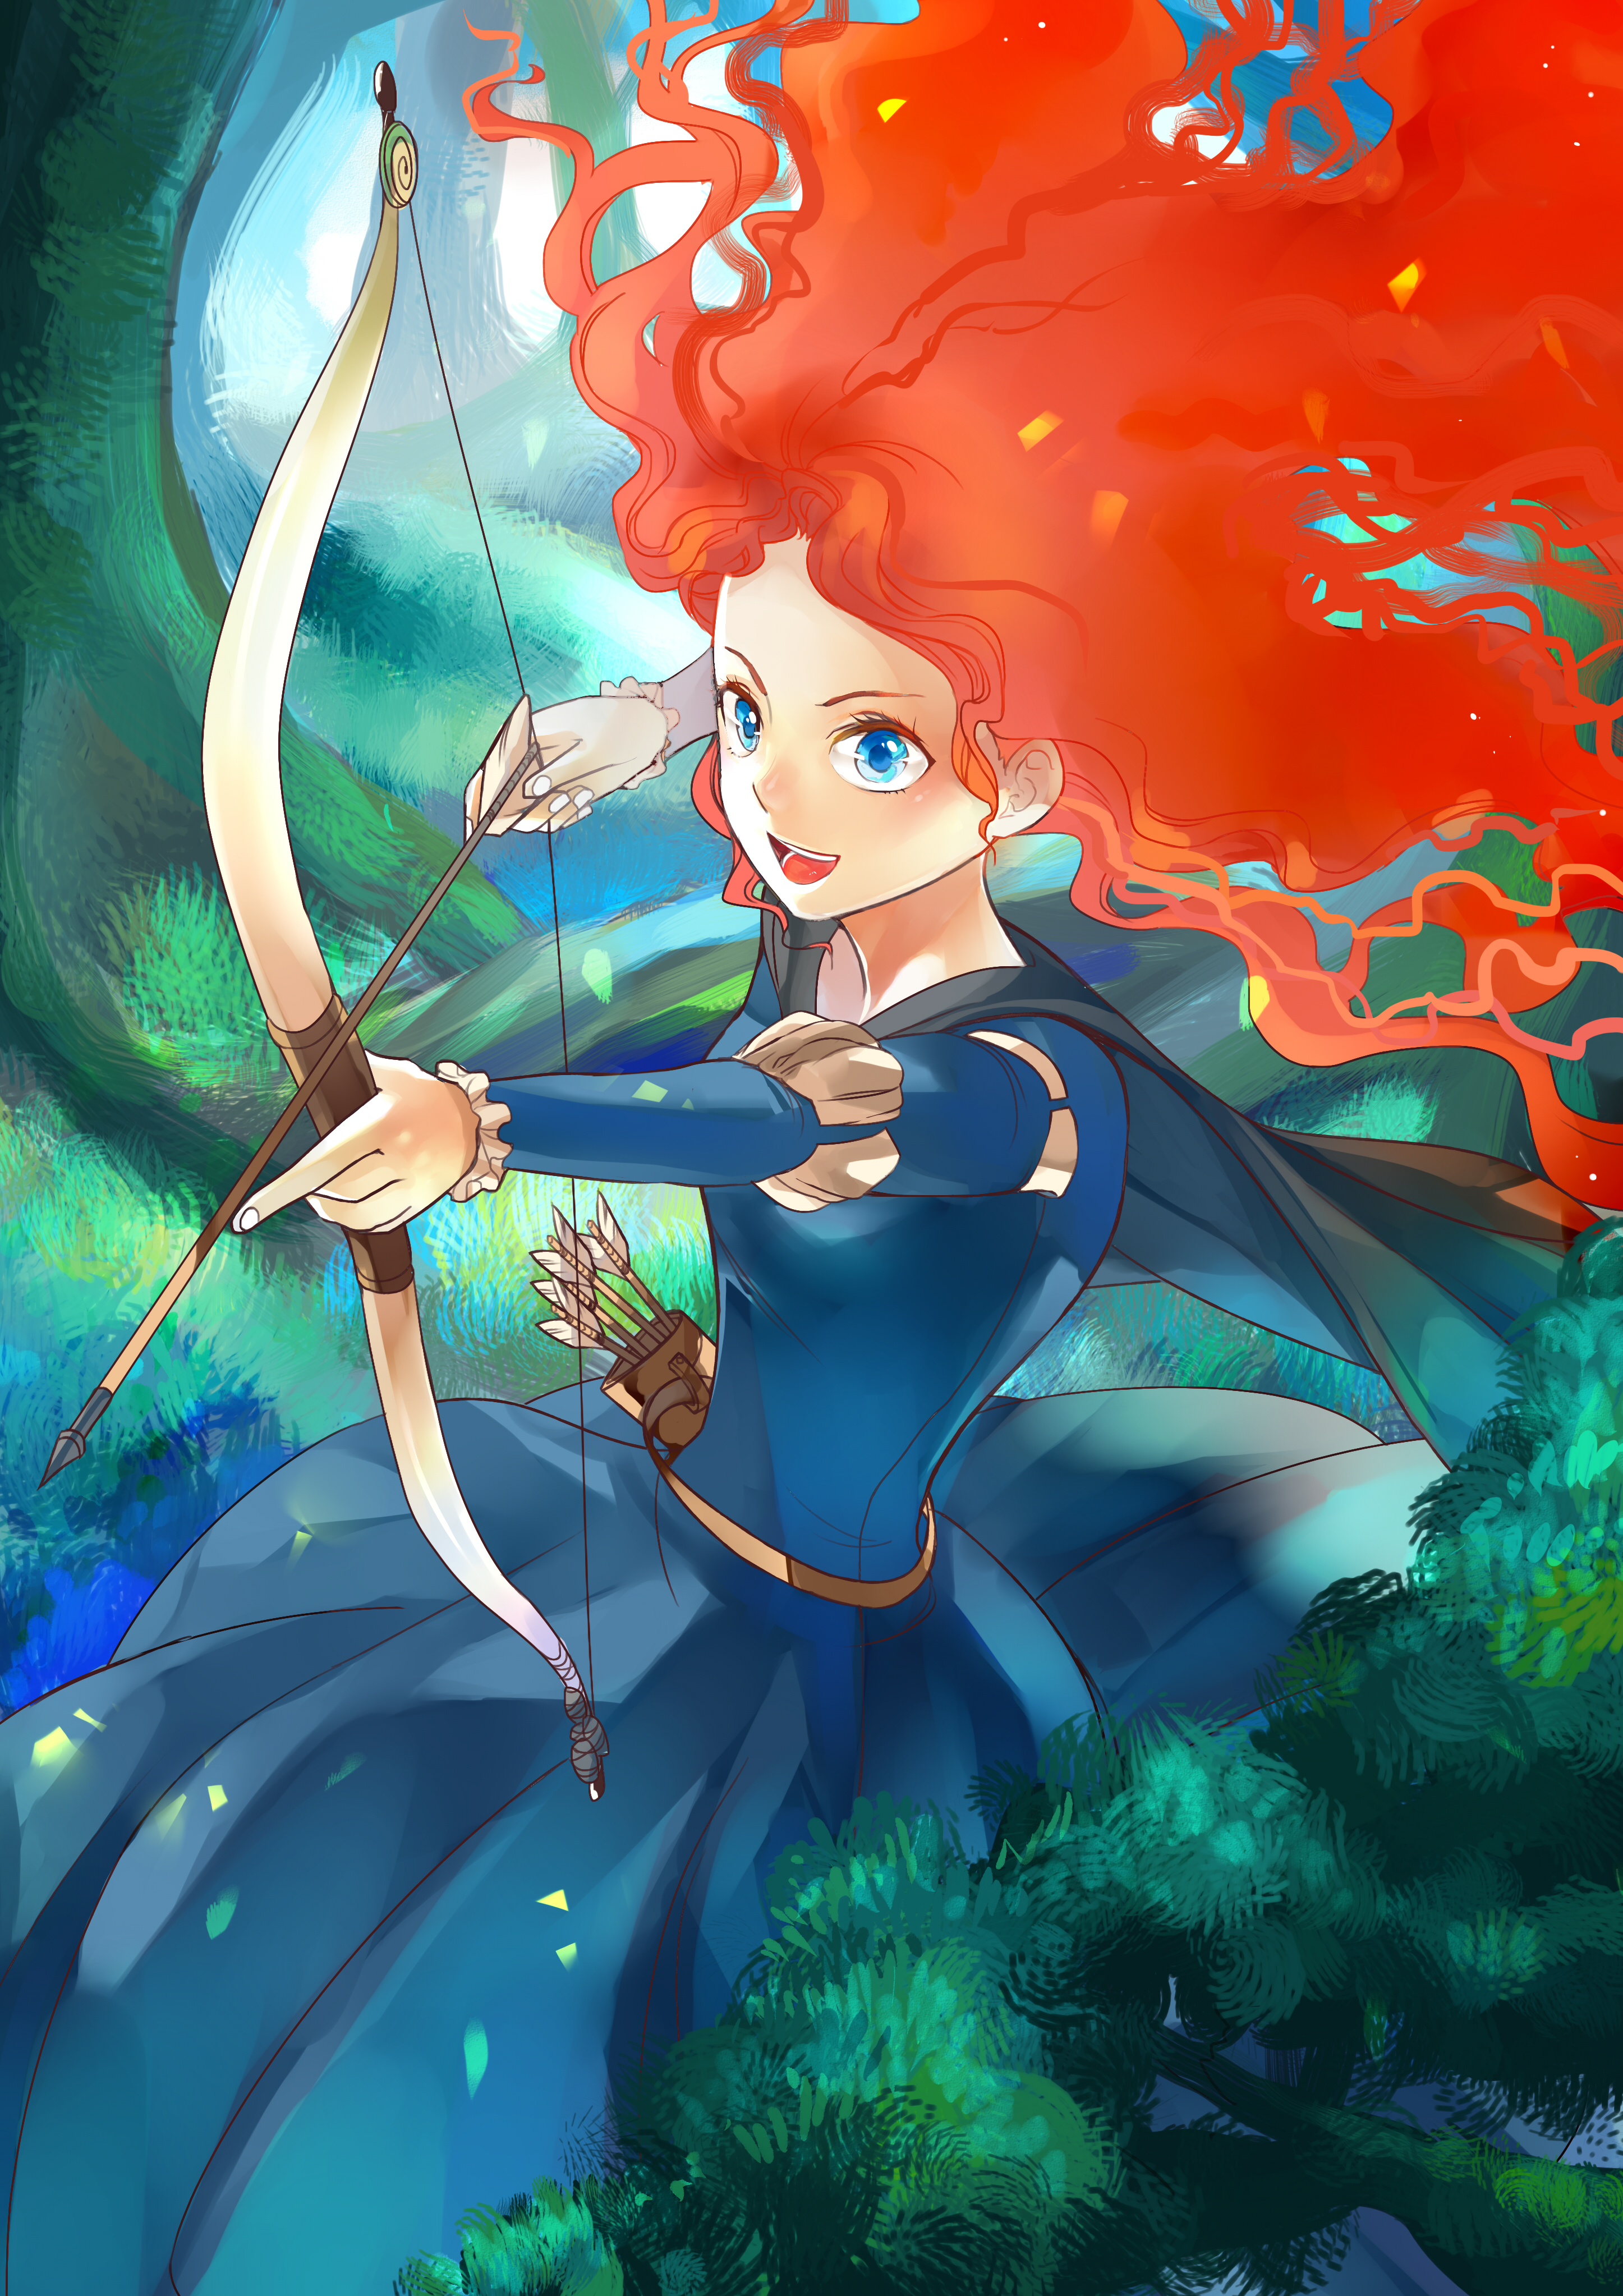 Merida As A Princess Princess M%c%arida Full